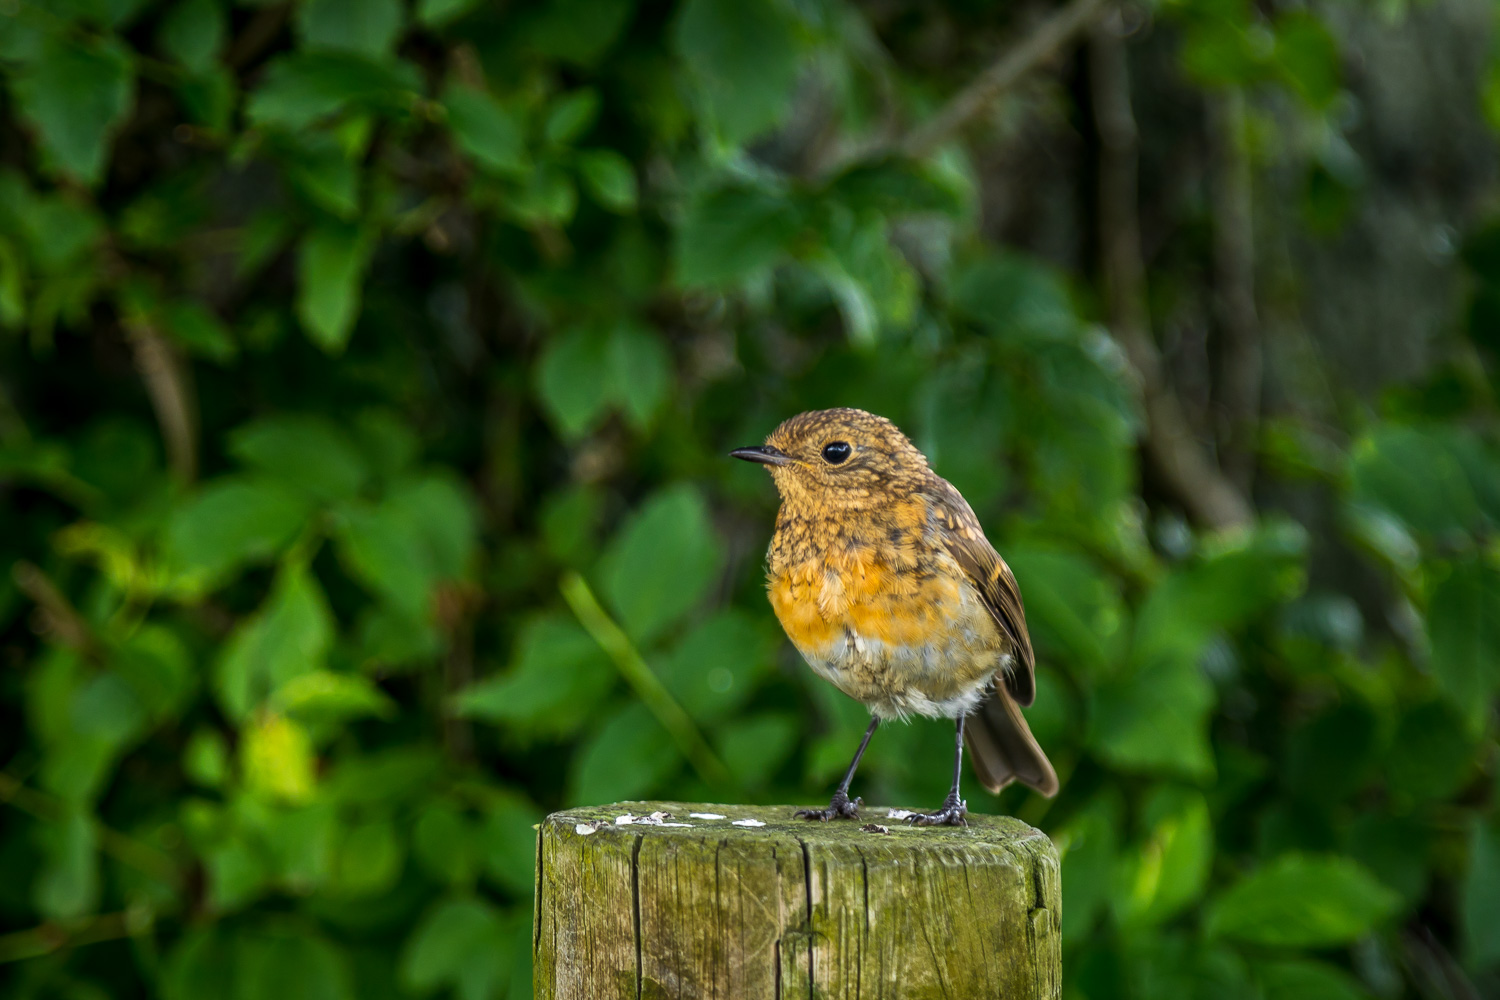 Young robin in the garden